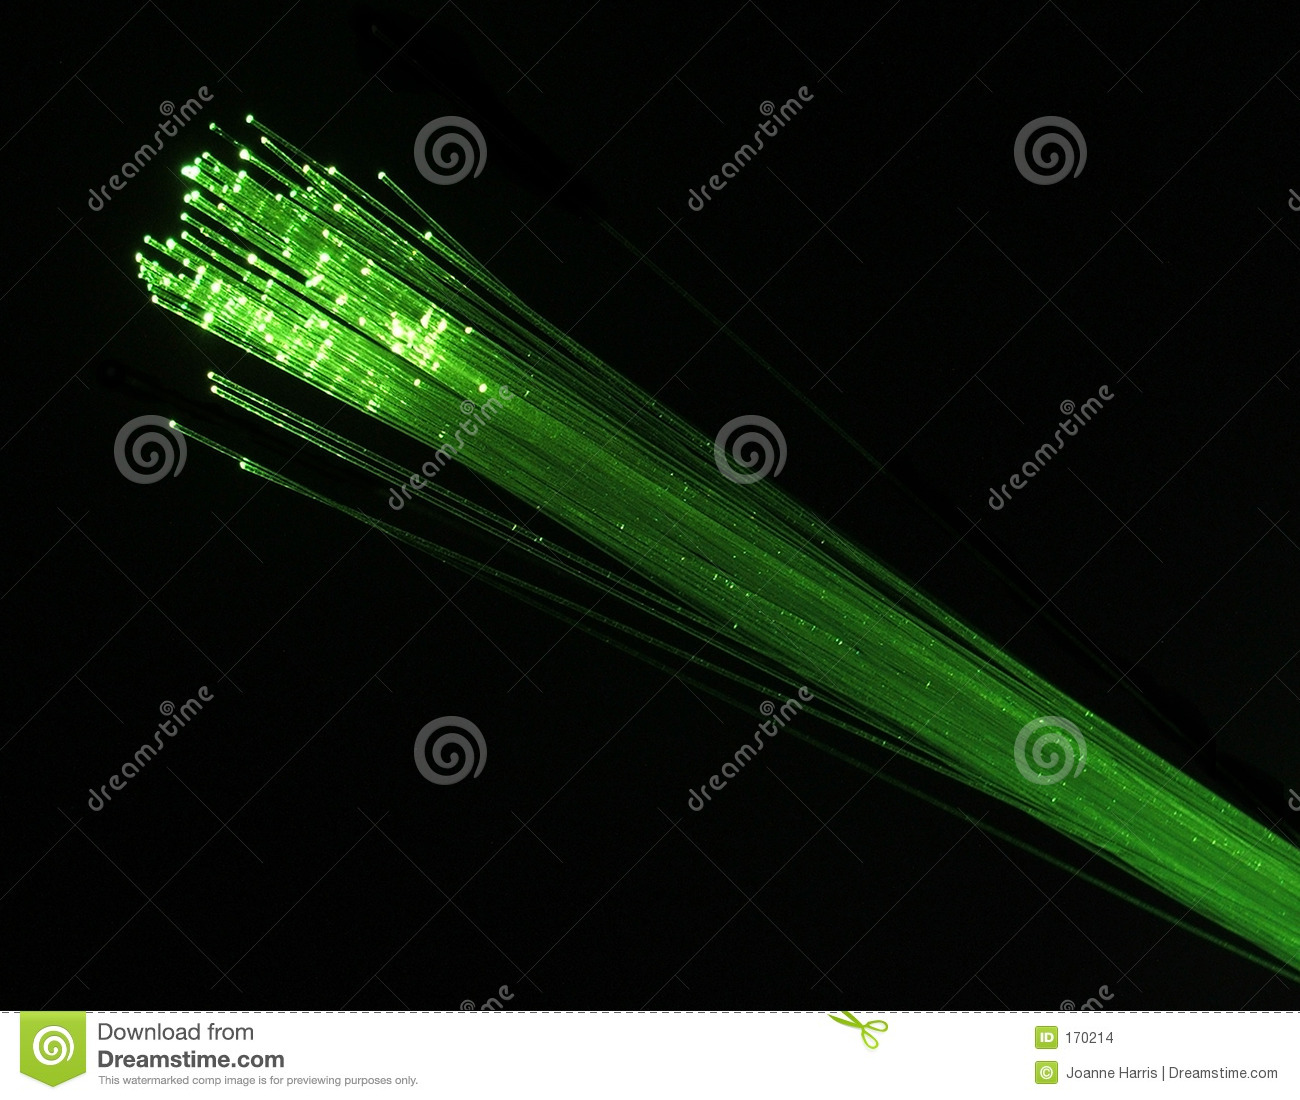 Fibre optics green